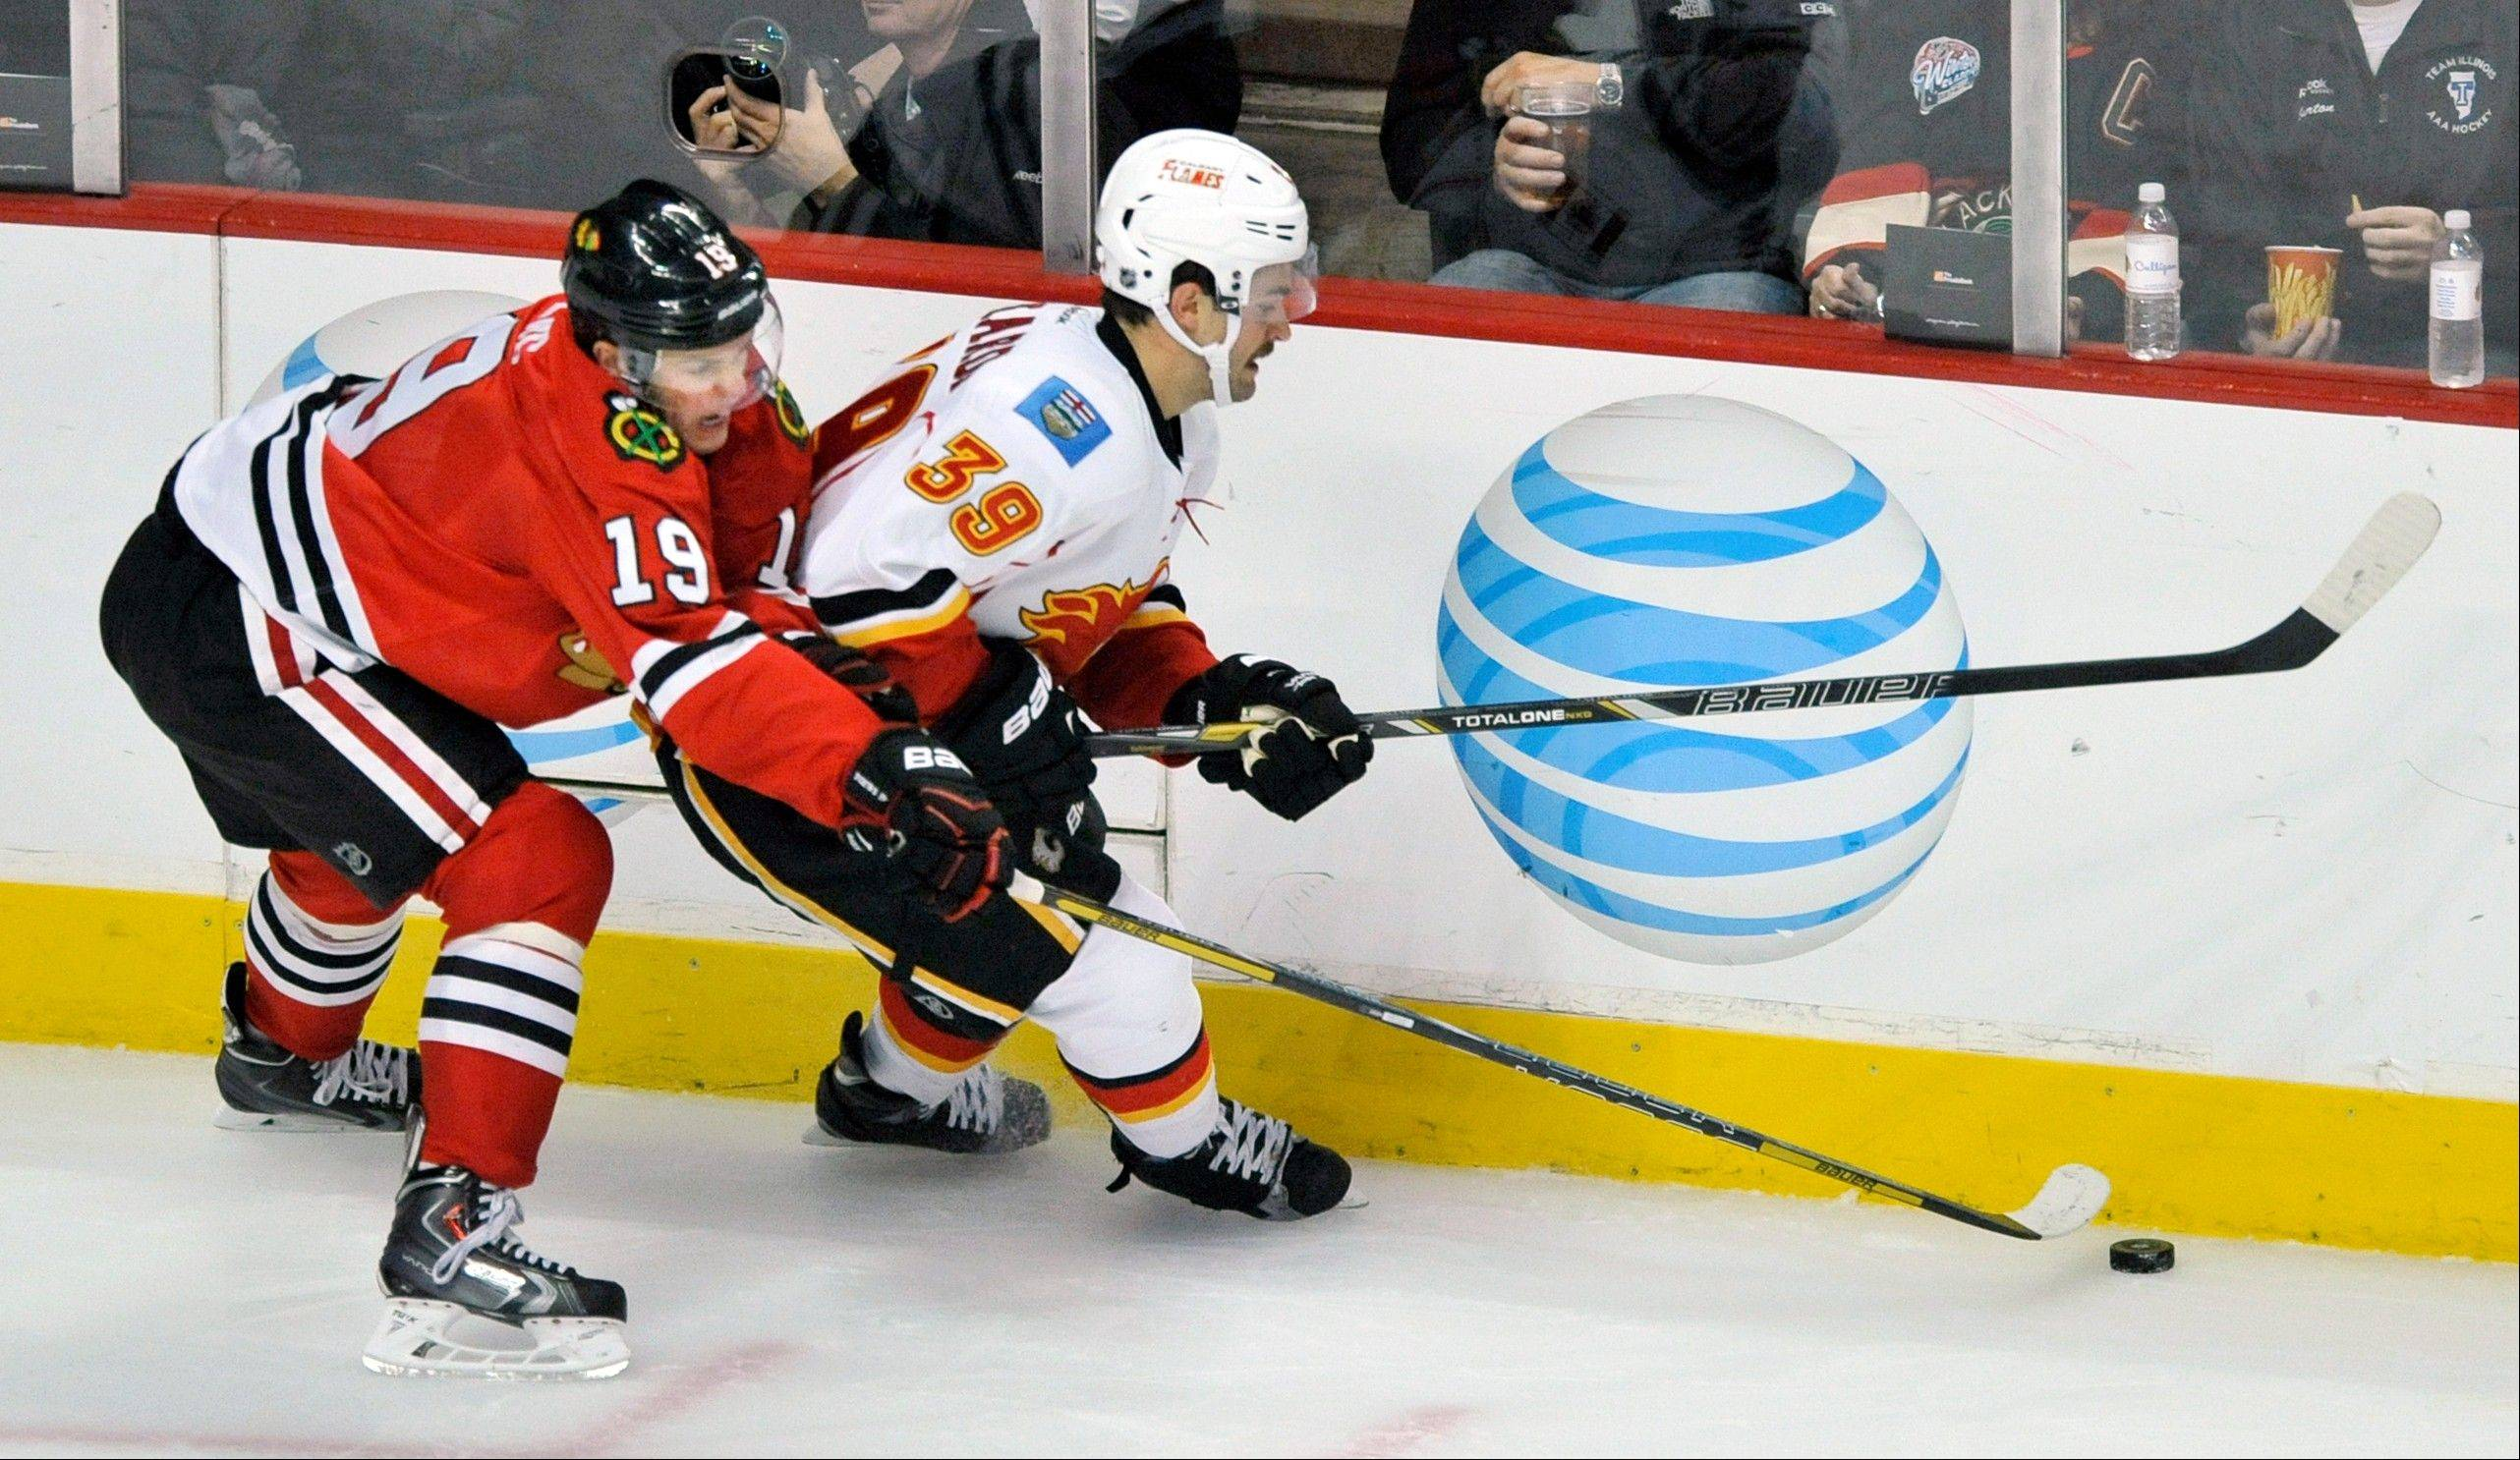 Blackhawks captain Jonathan Toews battles Calgary Flames skater T.J. Galiardi for the puck during the second period of an NHL hockey game in Chicago, Sunday, Nov. 3, 2013. Calgary won 3-2 in overtime.